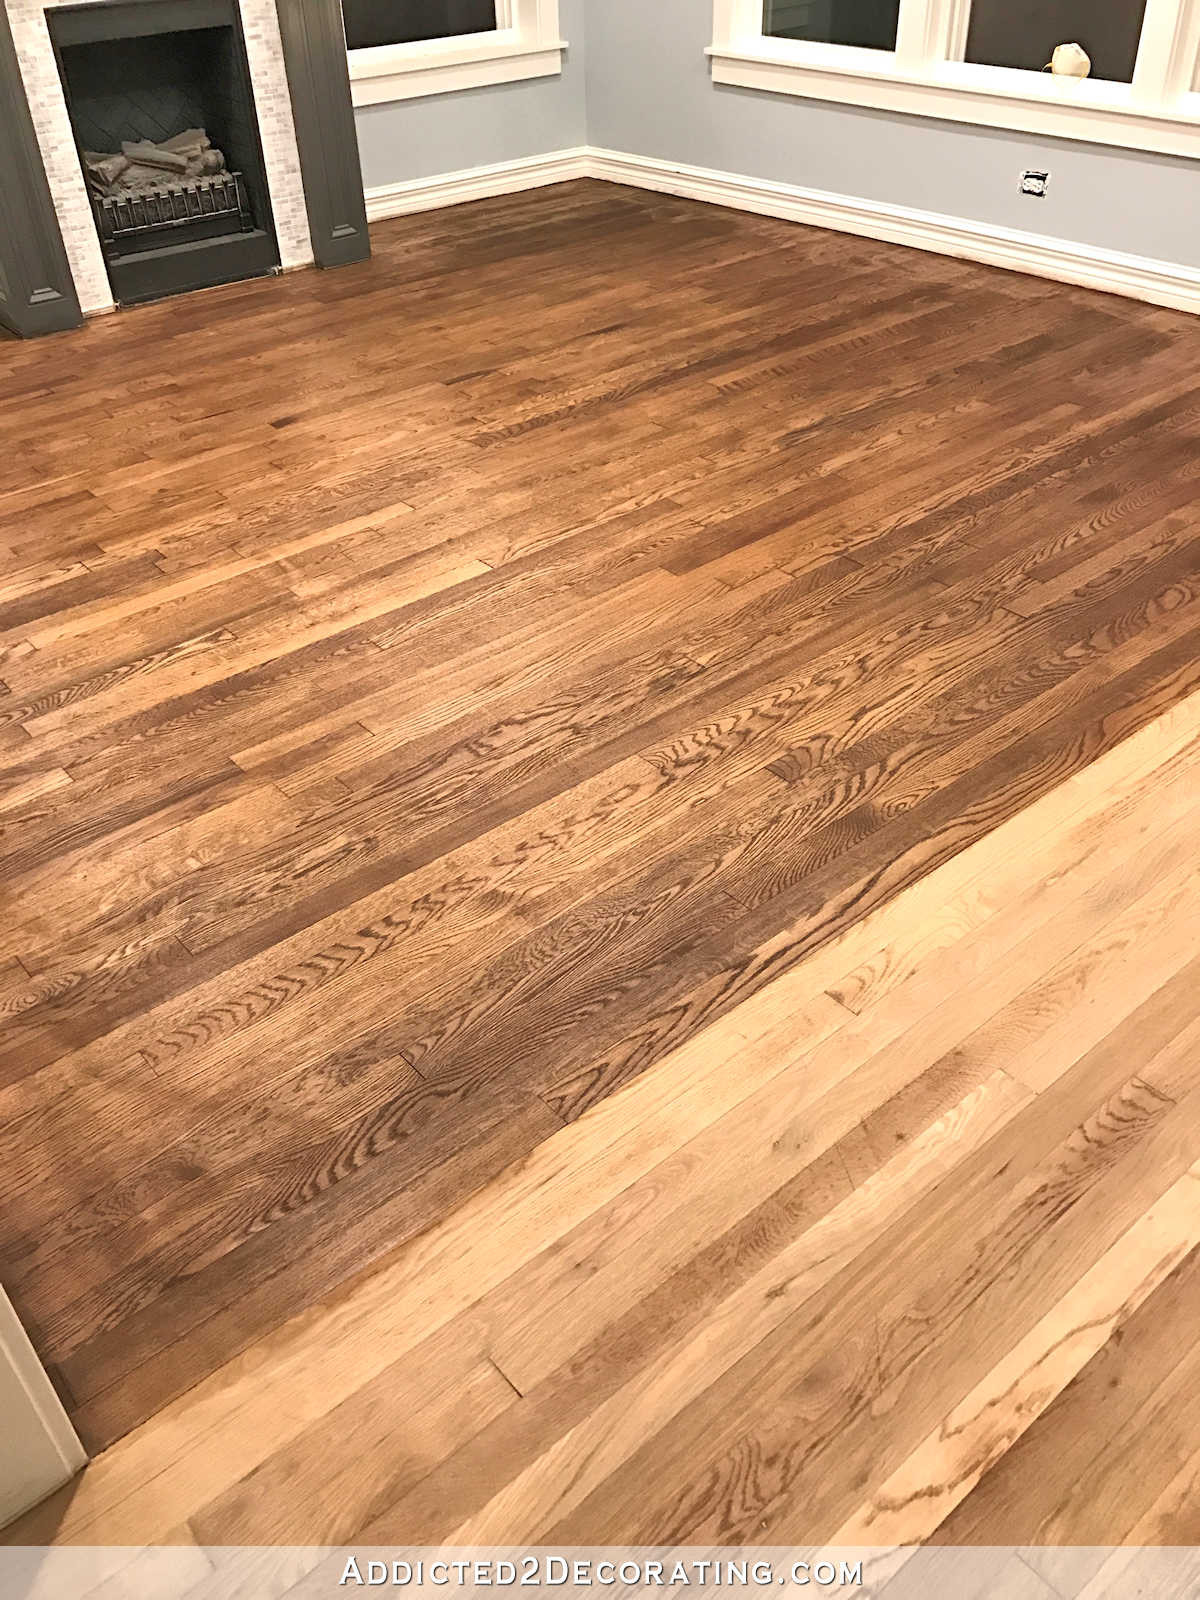 30 Lovable How to Protect Newly Refinished Hardwood Floors 2021 free download how to protect newly refinished hardwood floors of adventures in staining my red oak hardwood floors products process pertaining to staining red oak hardwood floors 7 stain on the living roo